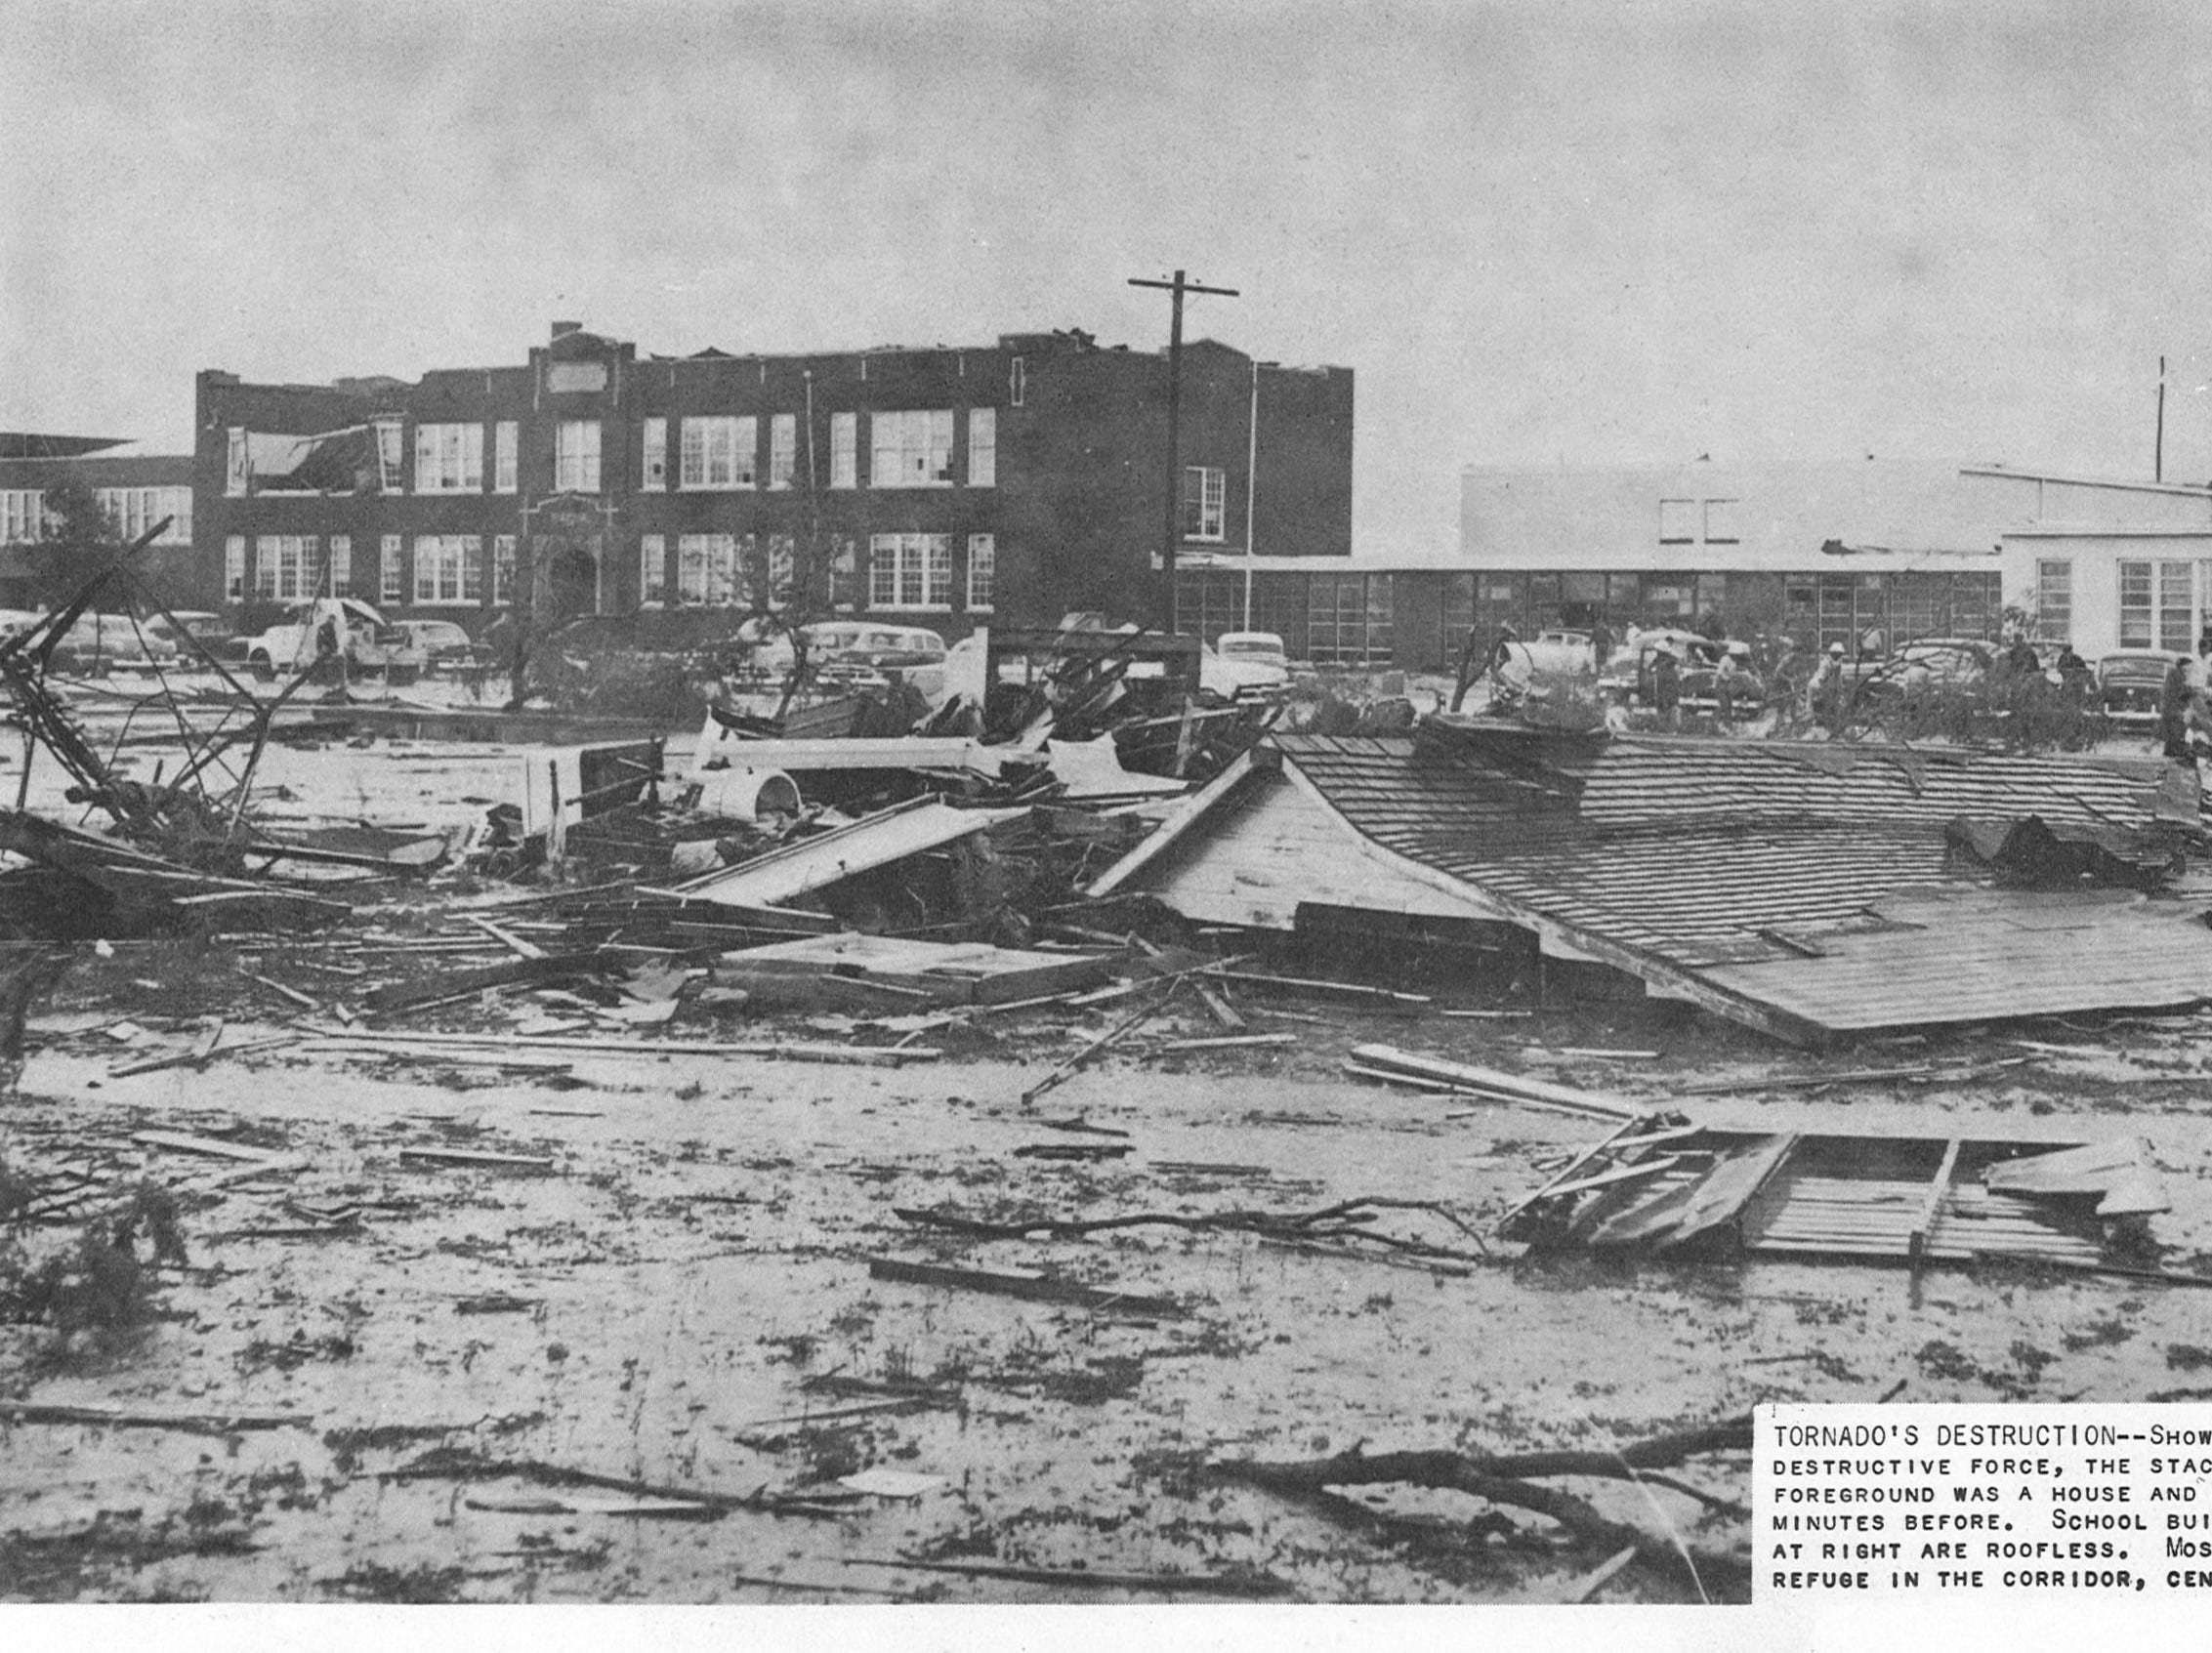 While parts of Lake View's school stood strong against the EF-4 Lake View tornado on May 11, 1953, some buildings were obliterated. The cut-line reads: Showing the tornado's destructive force, the stack of rubble in foreground was a house and its furnishing minutes before. School building extensions at right are roofless. Most students took refuge in the corridor, center background.